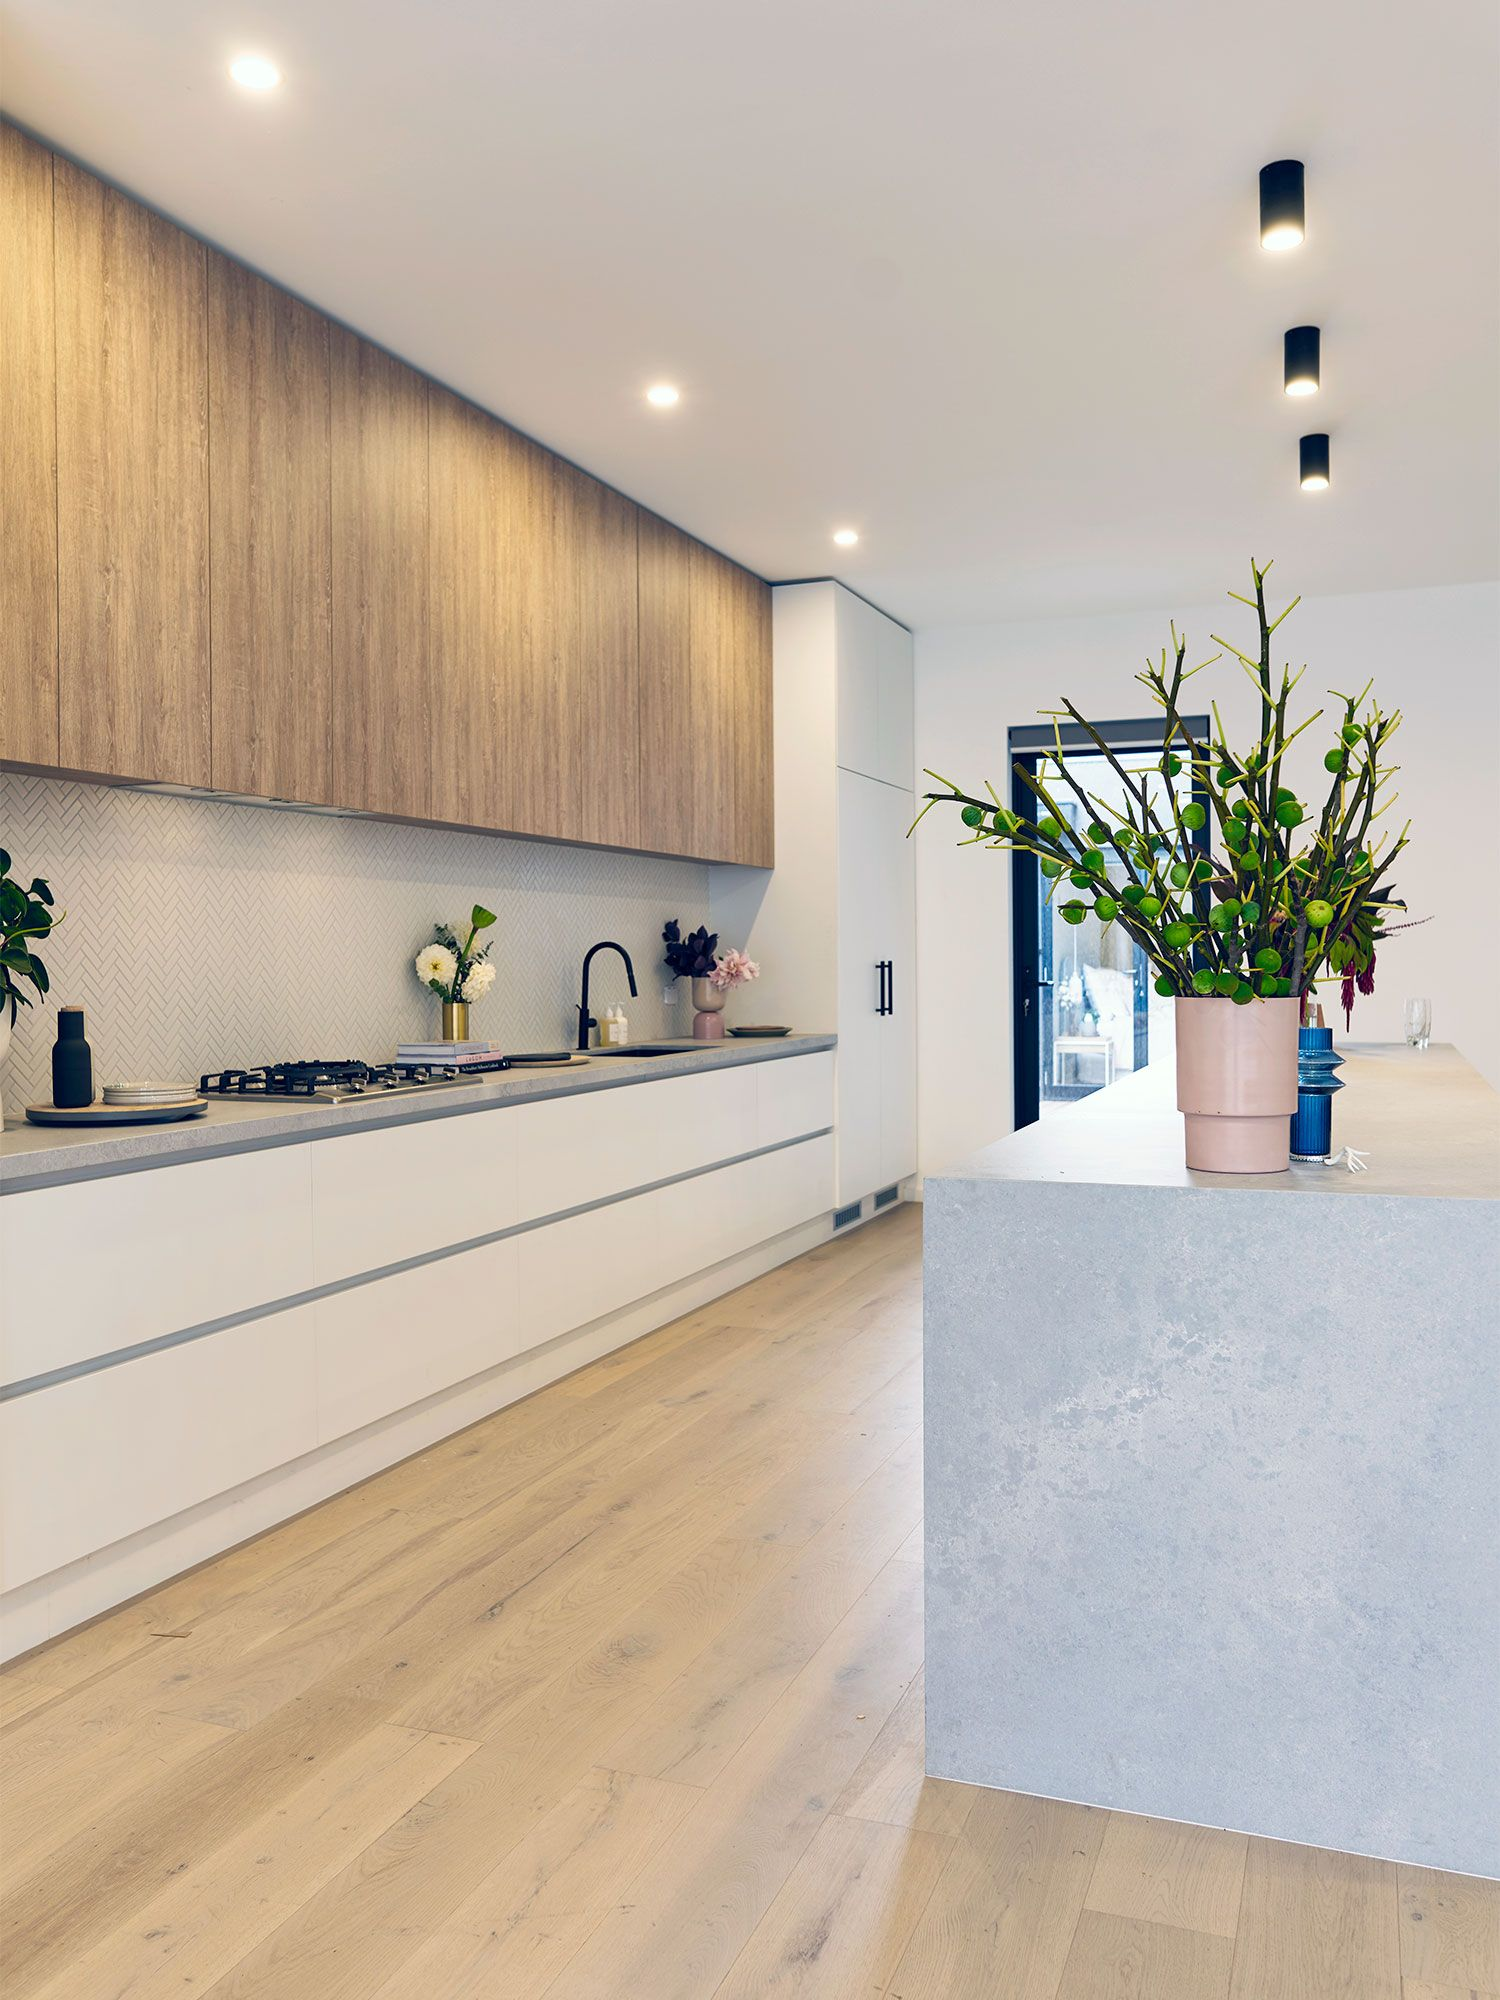 Photo of Norsu Kitchen Renovation Achieves Chic On a Budget – realestate.com.au